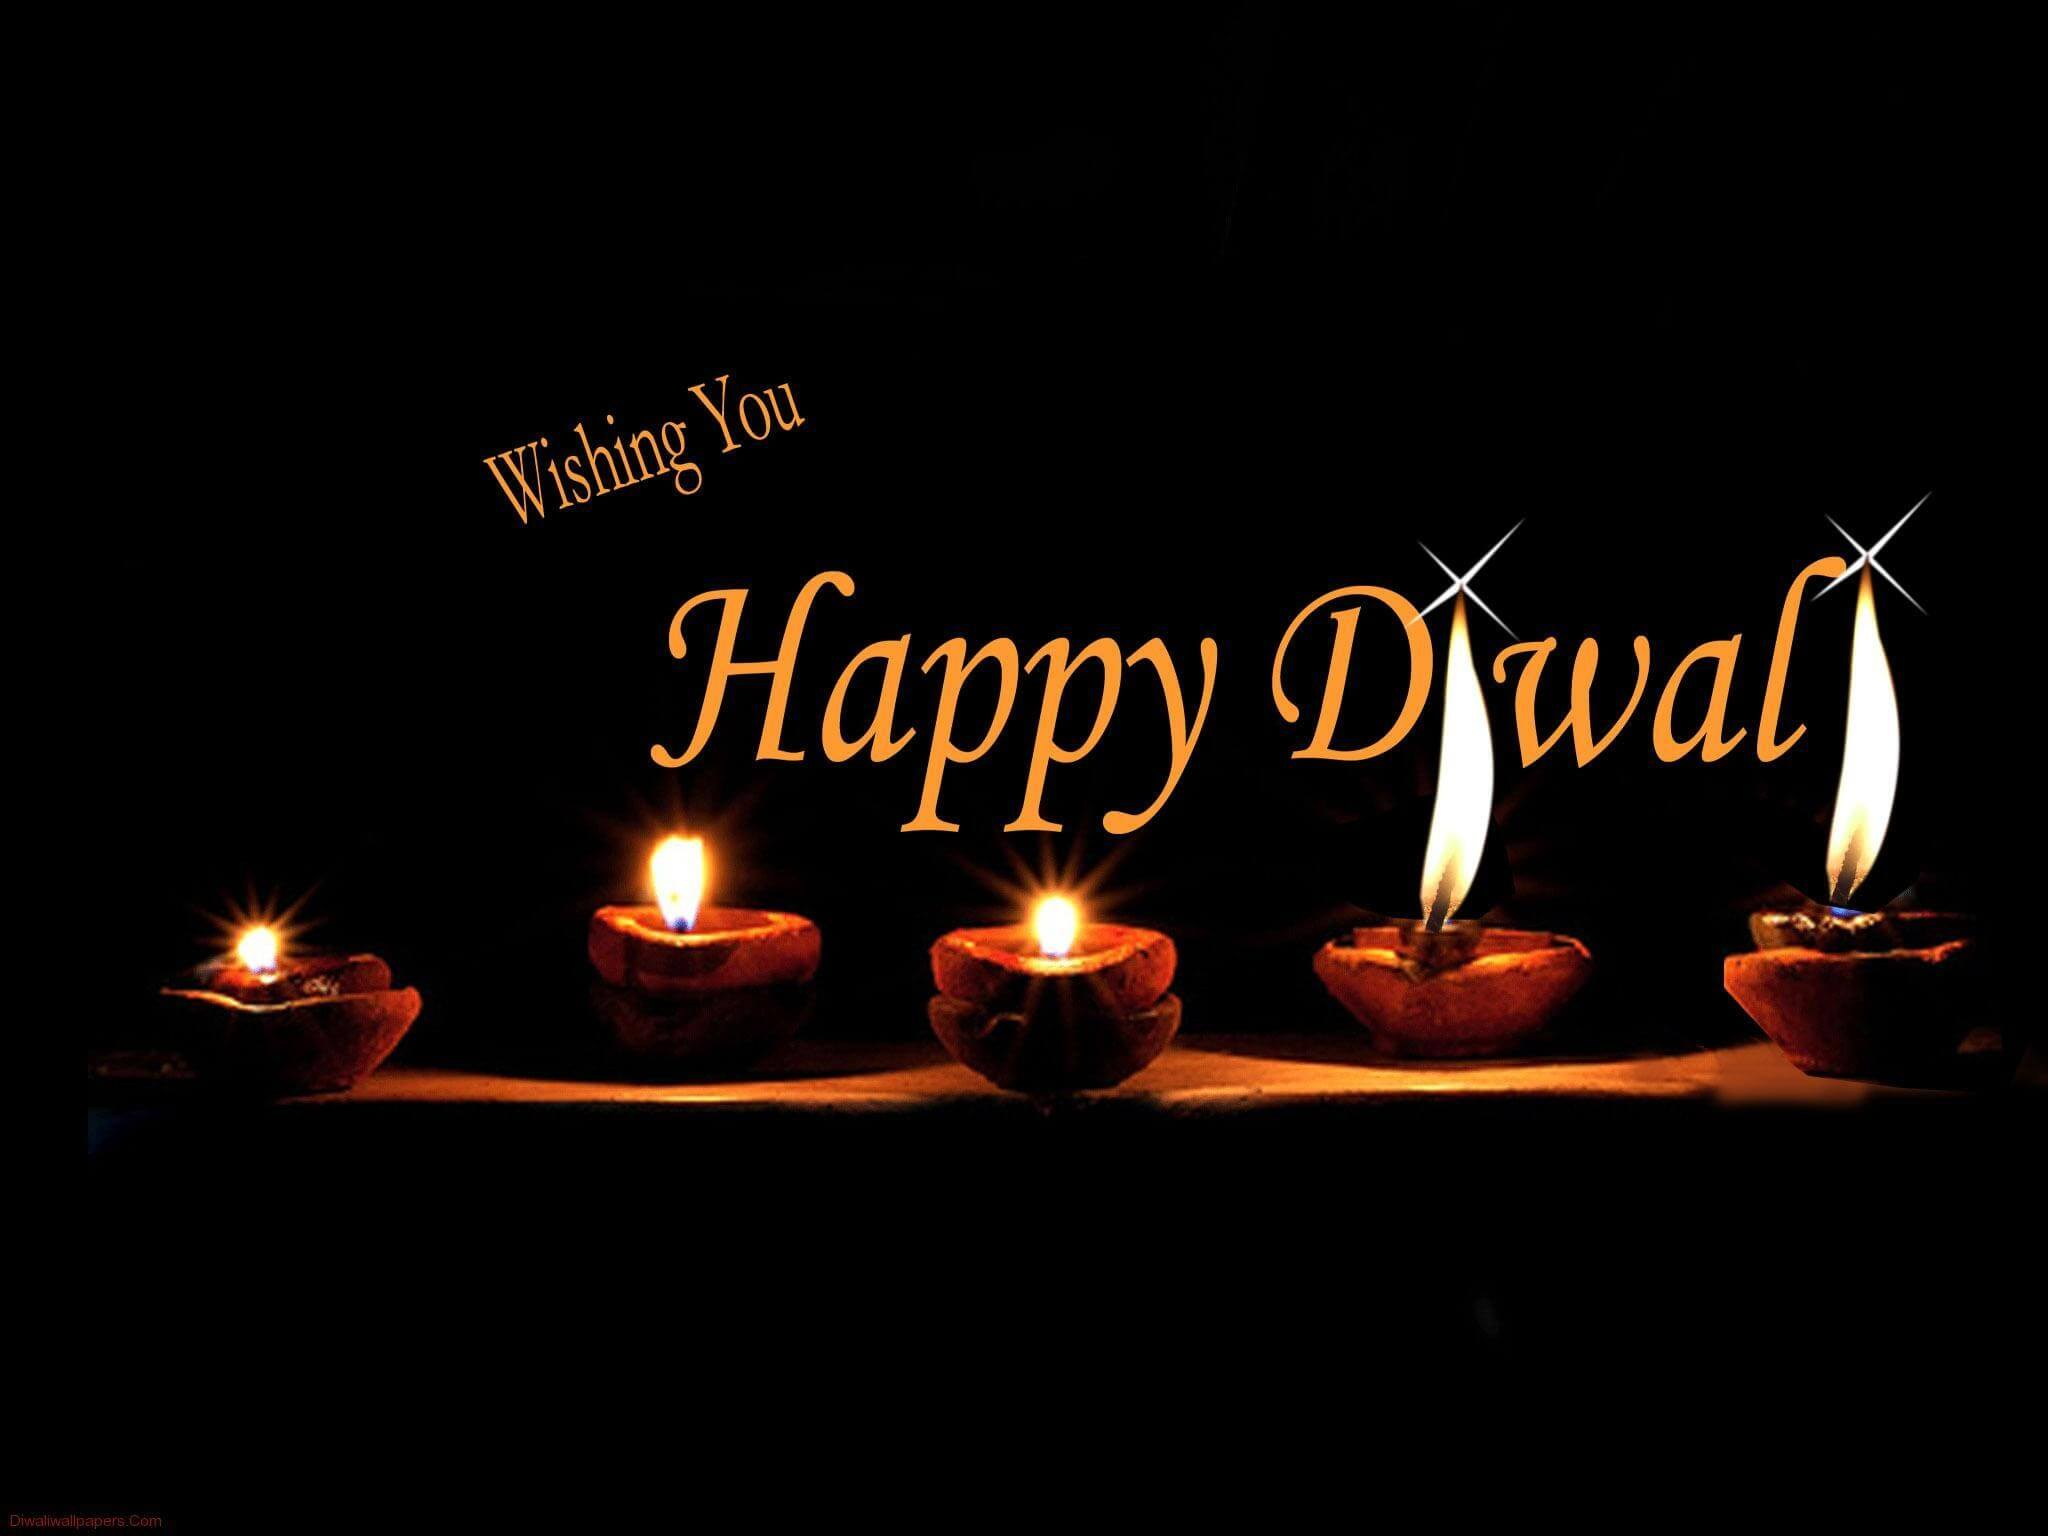 happy diwali wishes desktop pc hd wallpaper